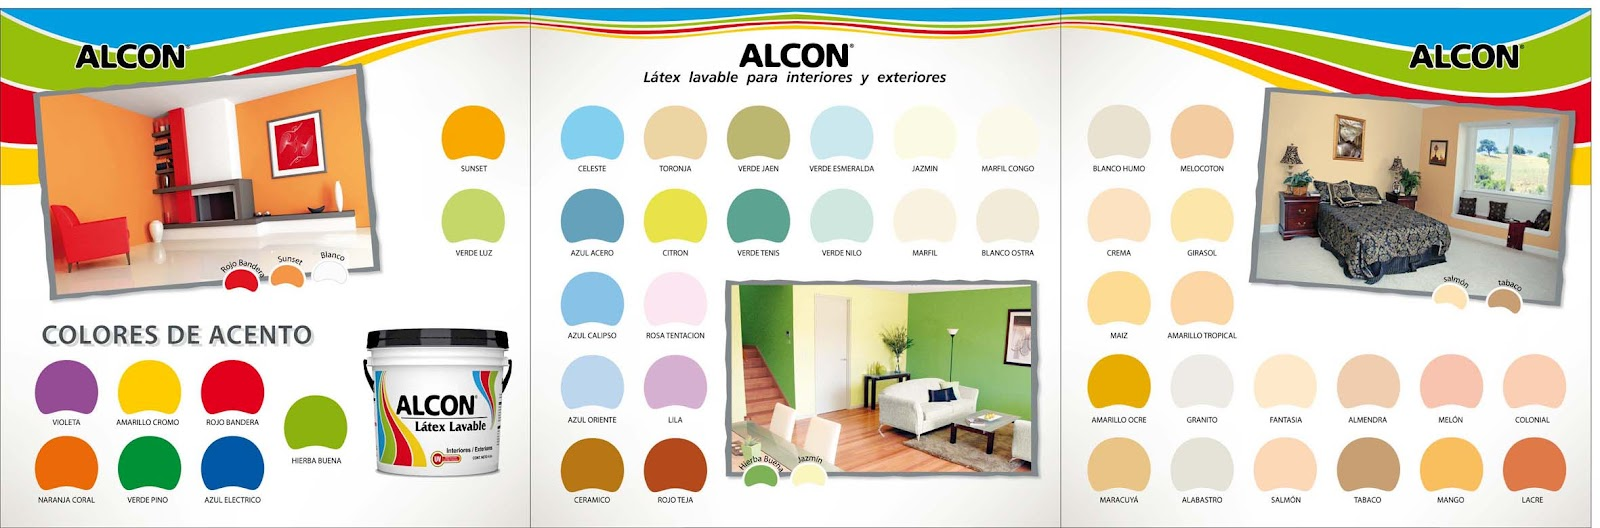 Catalogo de colores pinturas alcon arte dise o y for Catalogo de pinturas